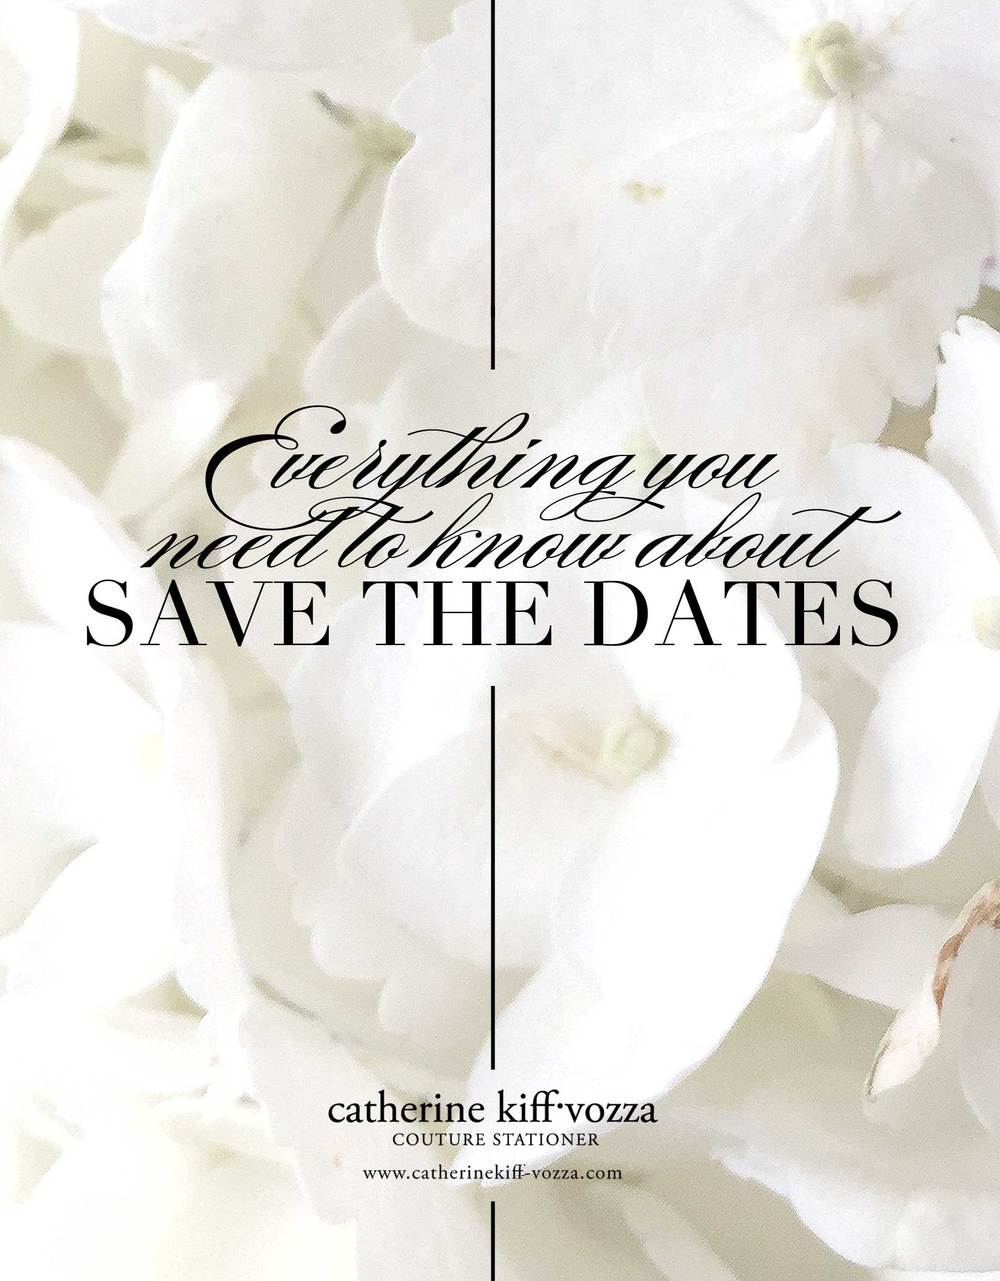 Everythin you need to know about Save the Dates